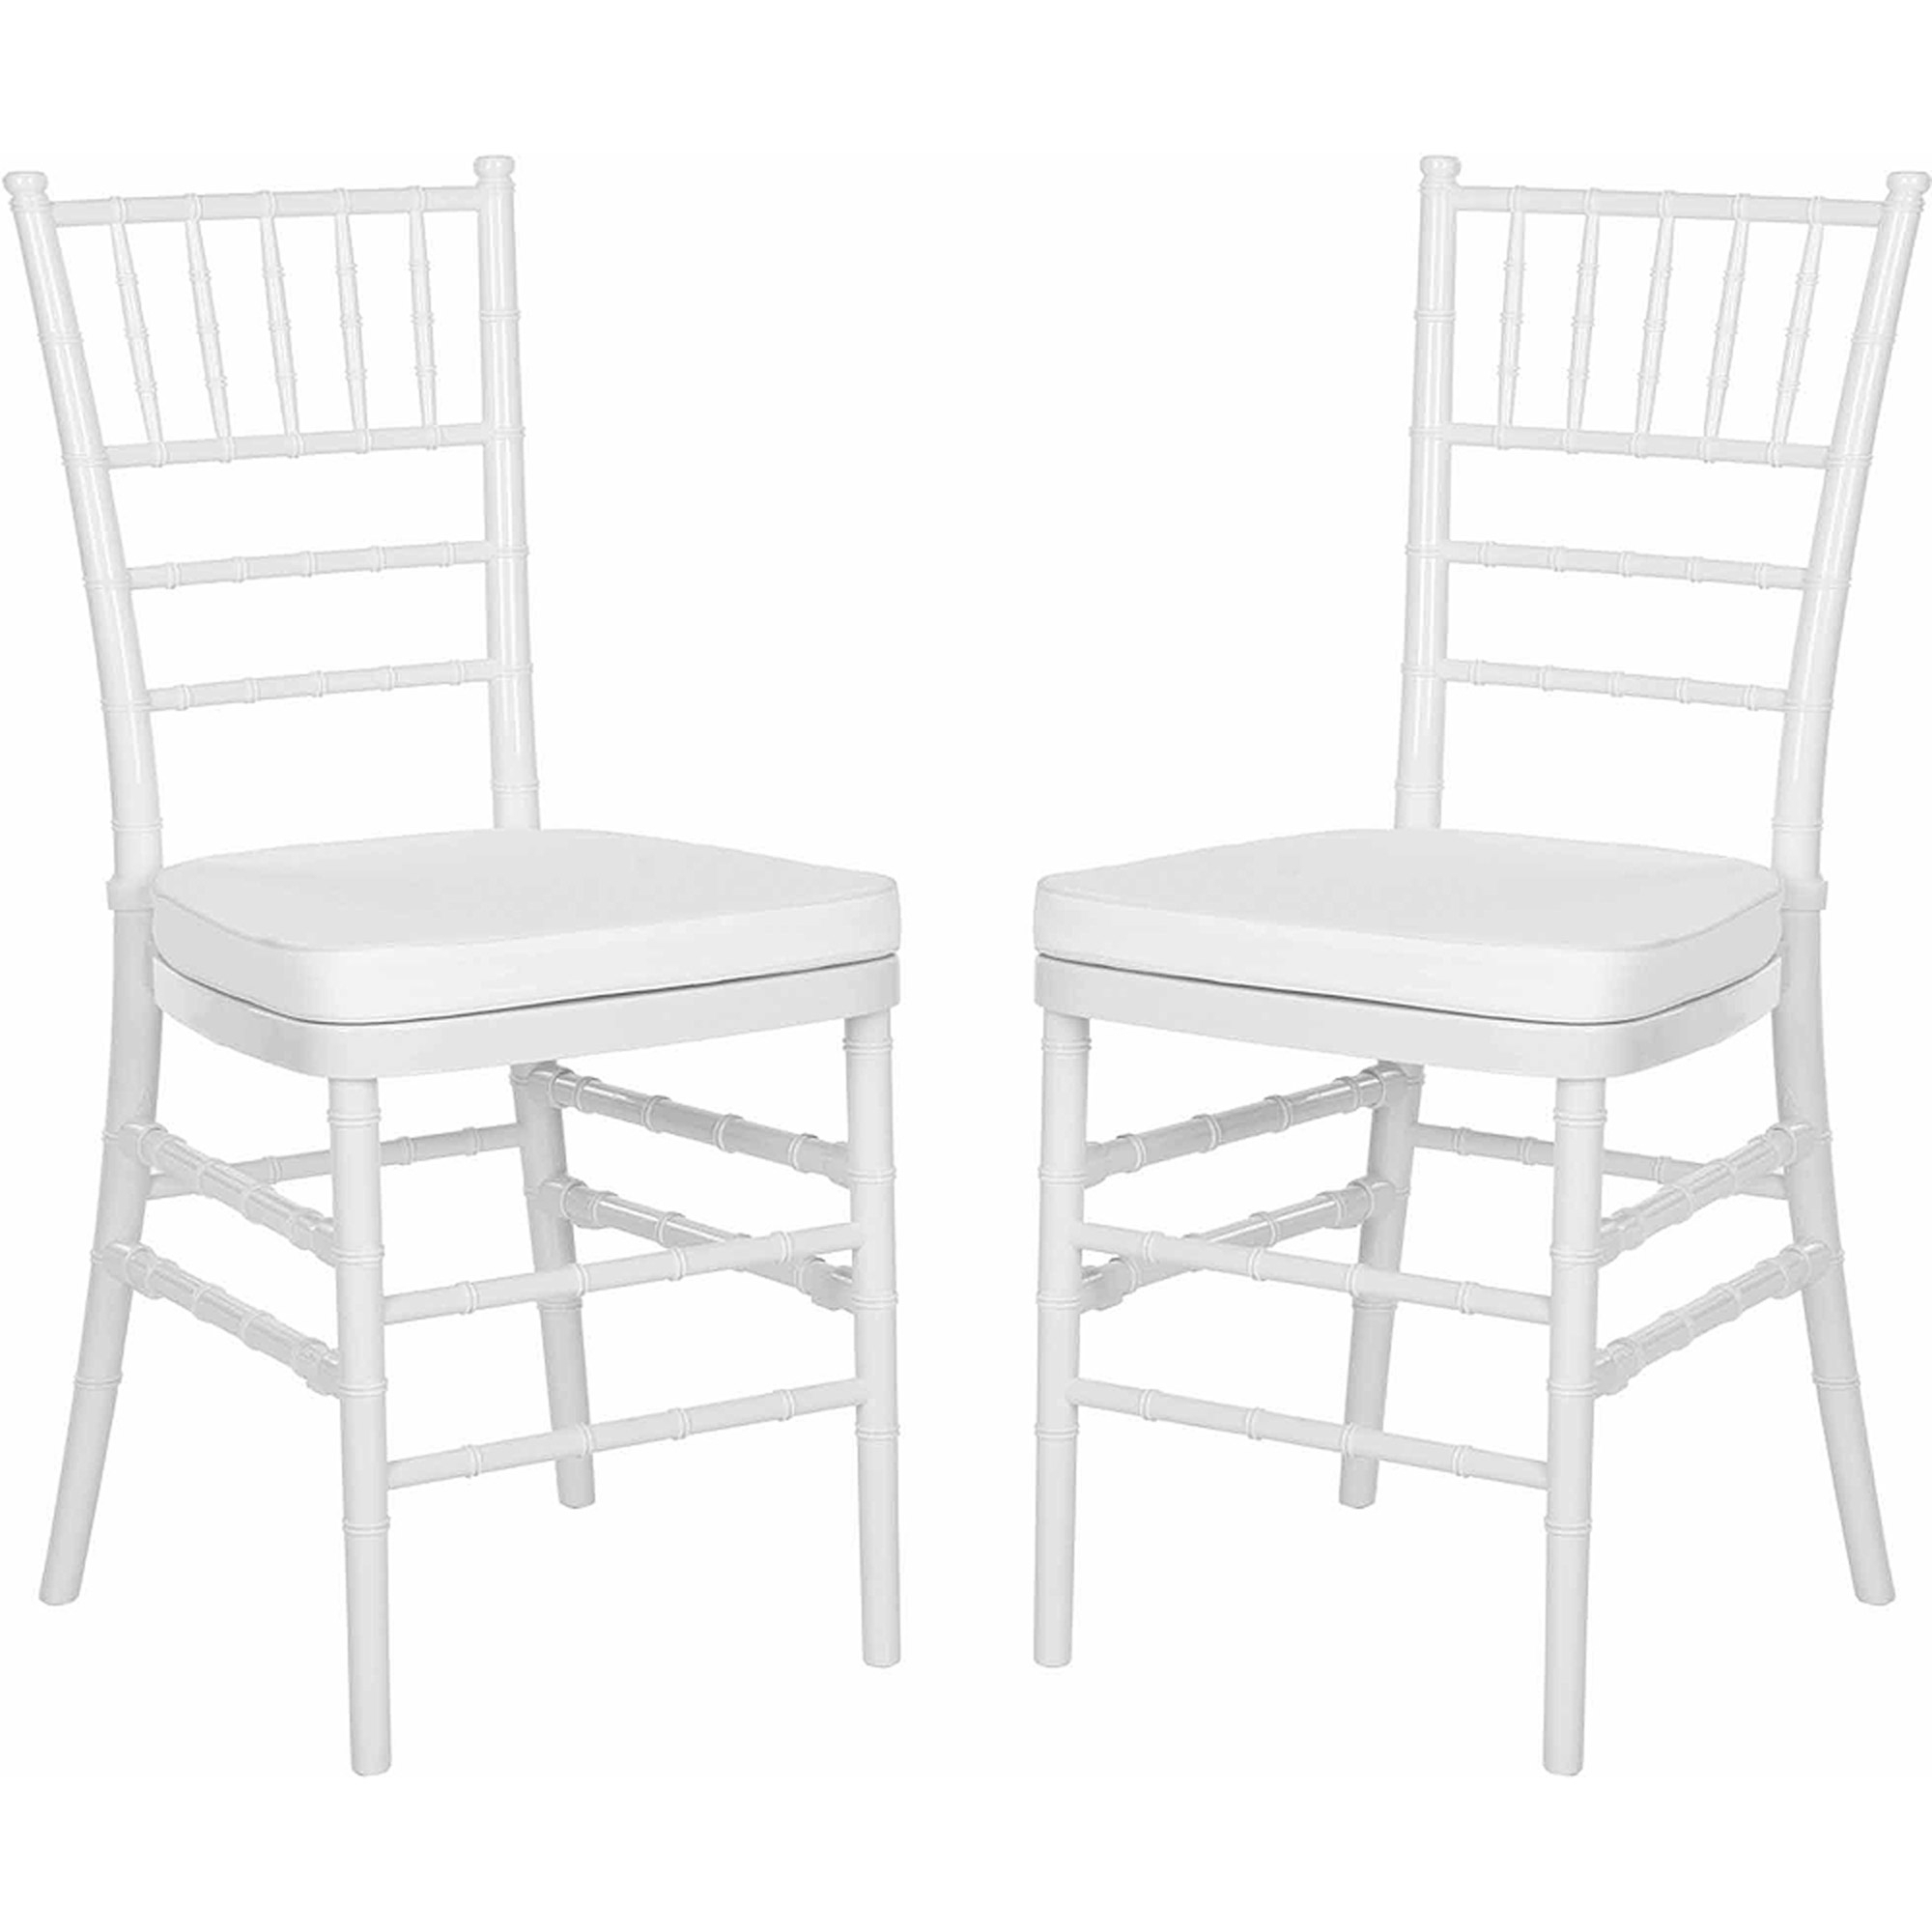 Safavieh Carly Side Chair, Set Of 2 – Walmart Pertaining To Fashionable Carly Side Chairs (View 15 of 20)